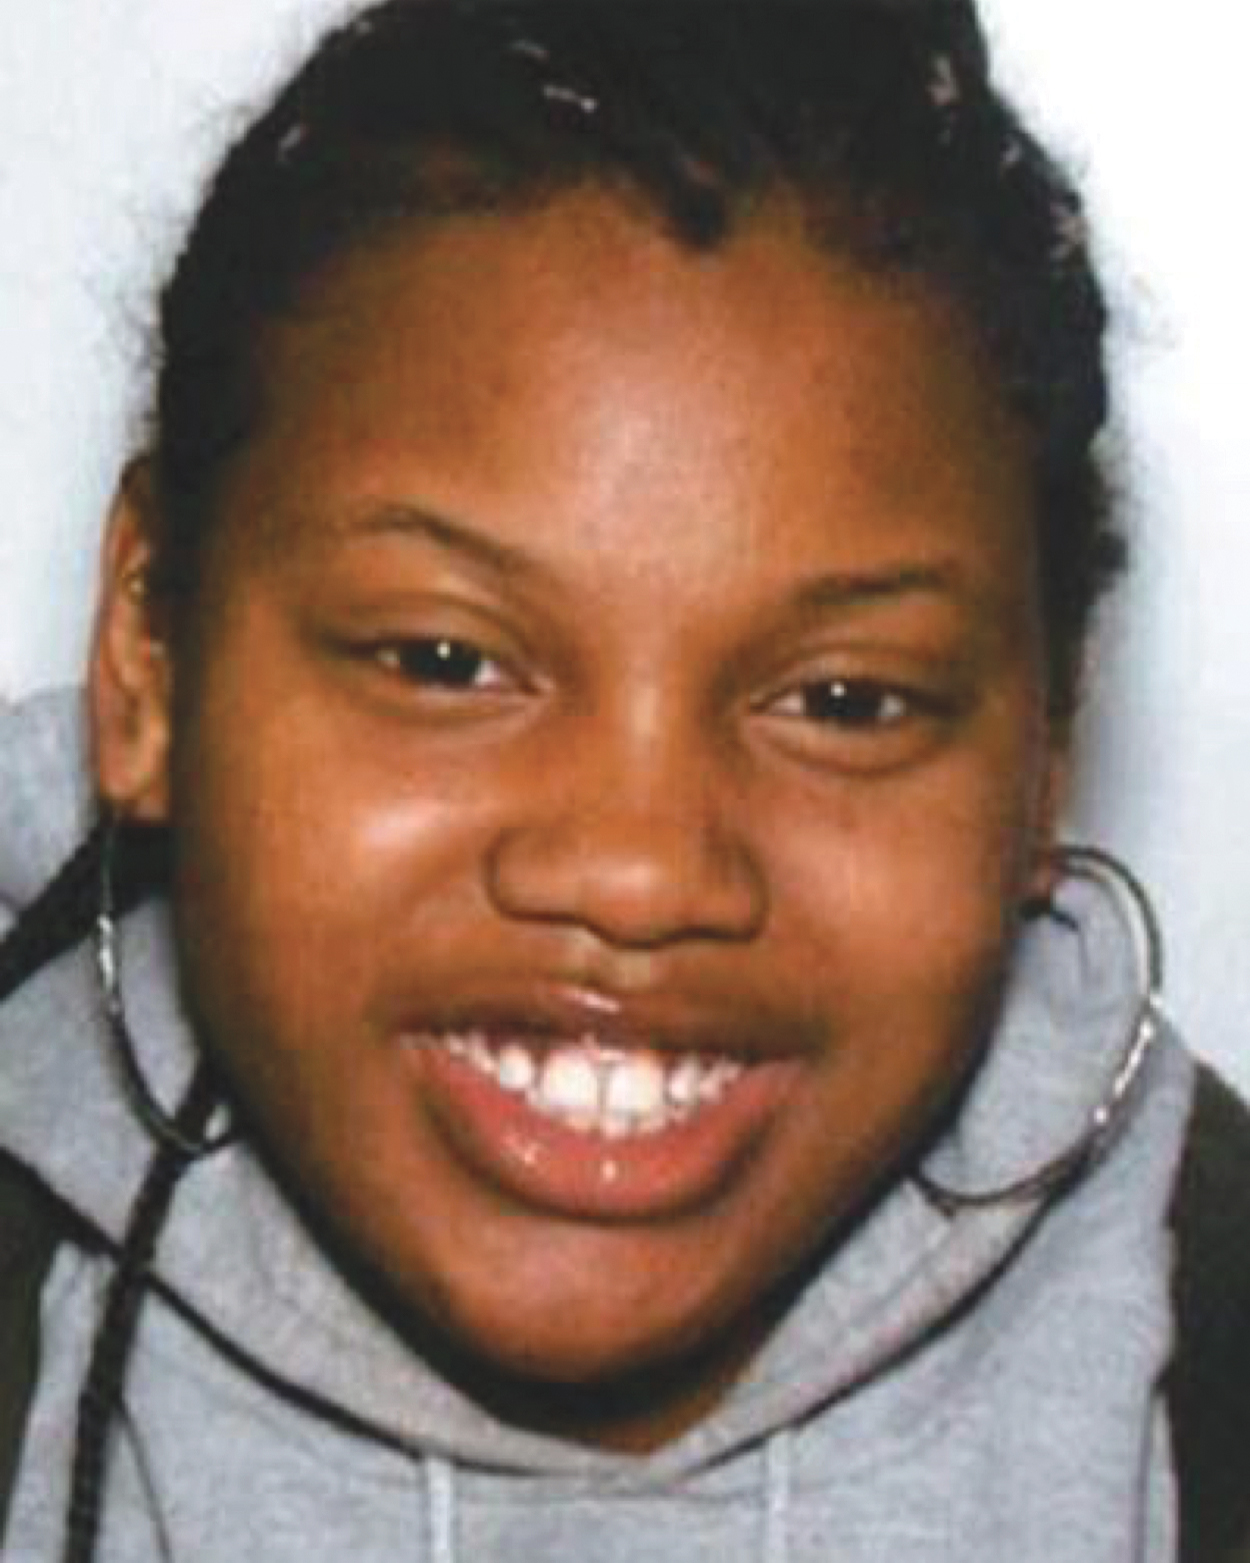 Zaria Mccier/Courtesy National Center for Missing & Exploited Children